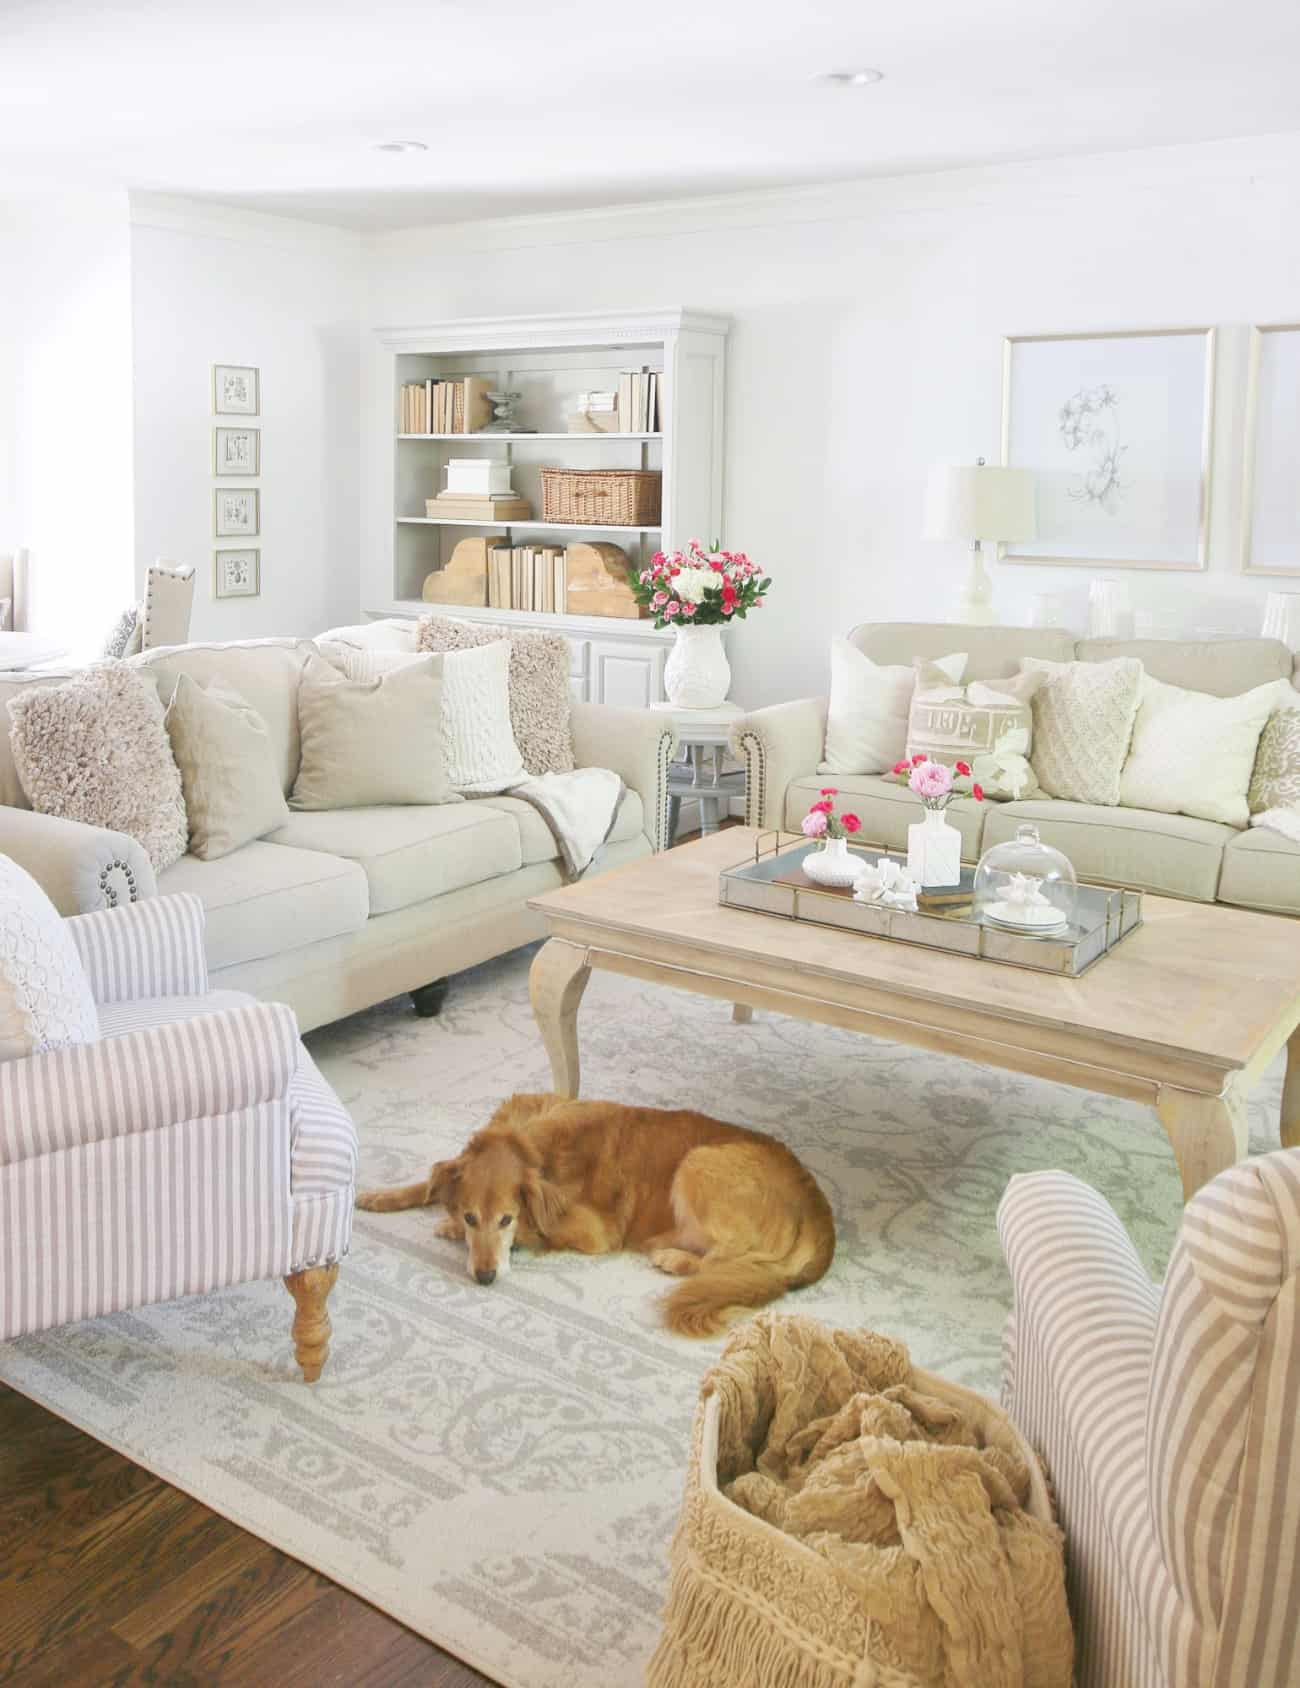 Summer Decorating Ideas For the Living Room - Thistlewood Farm